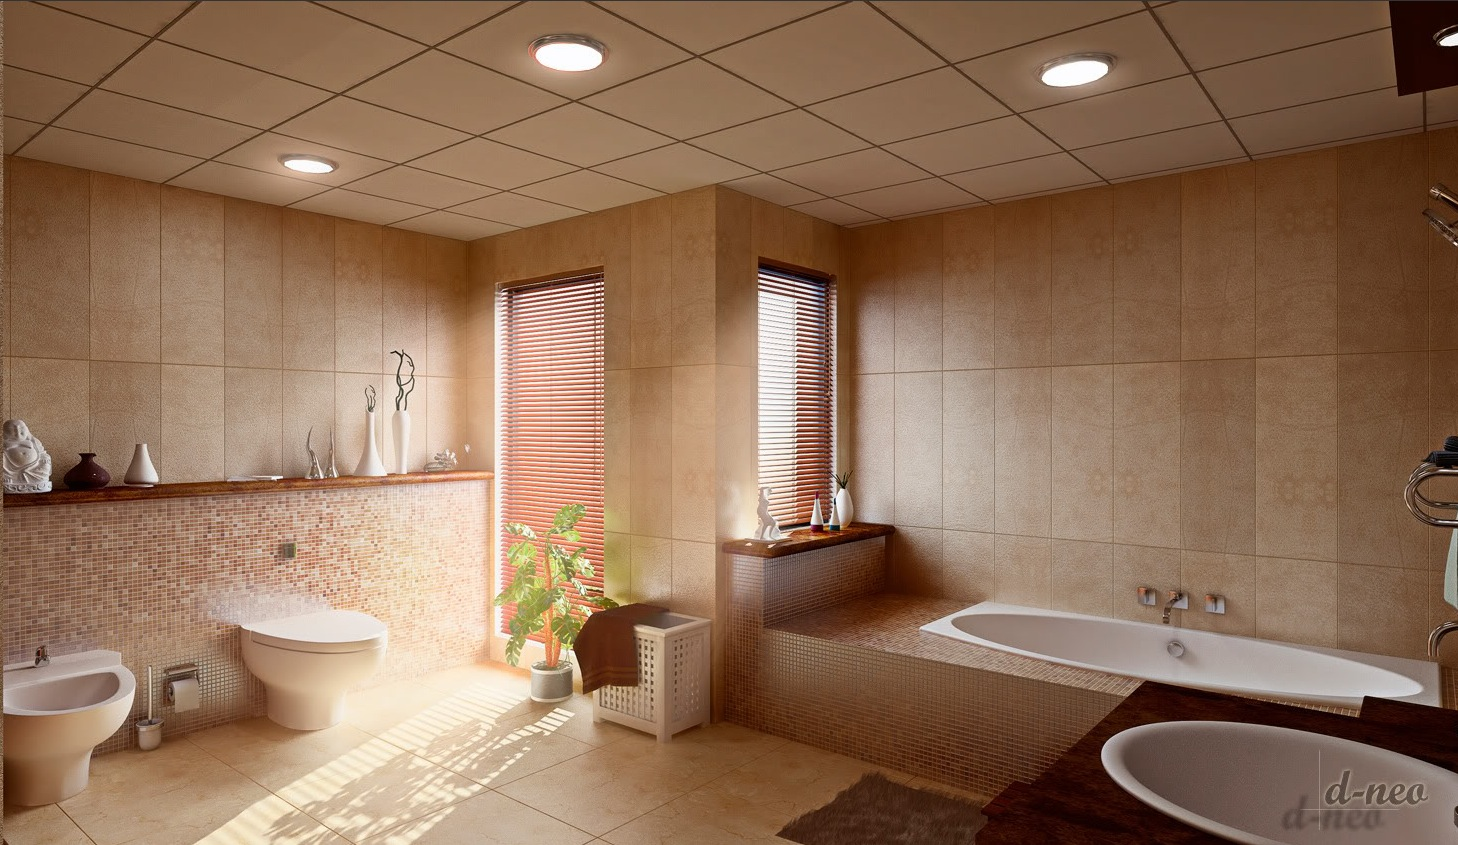 Tile Bathroom Ceiling Pictures 25 great ideas and pictures cool bathroom tile designs ideas